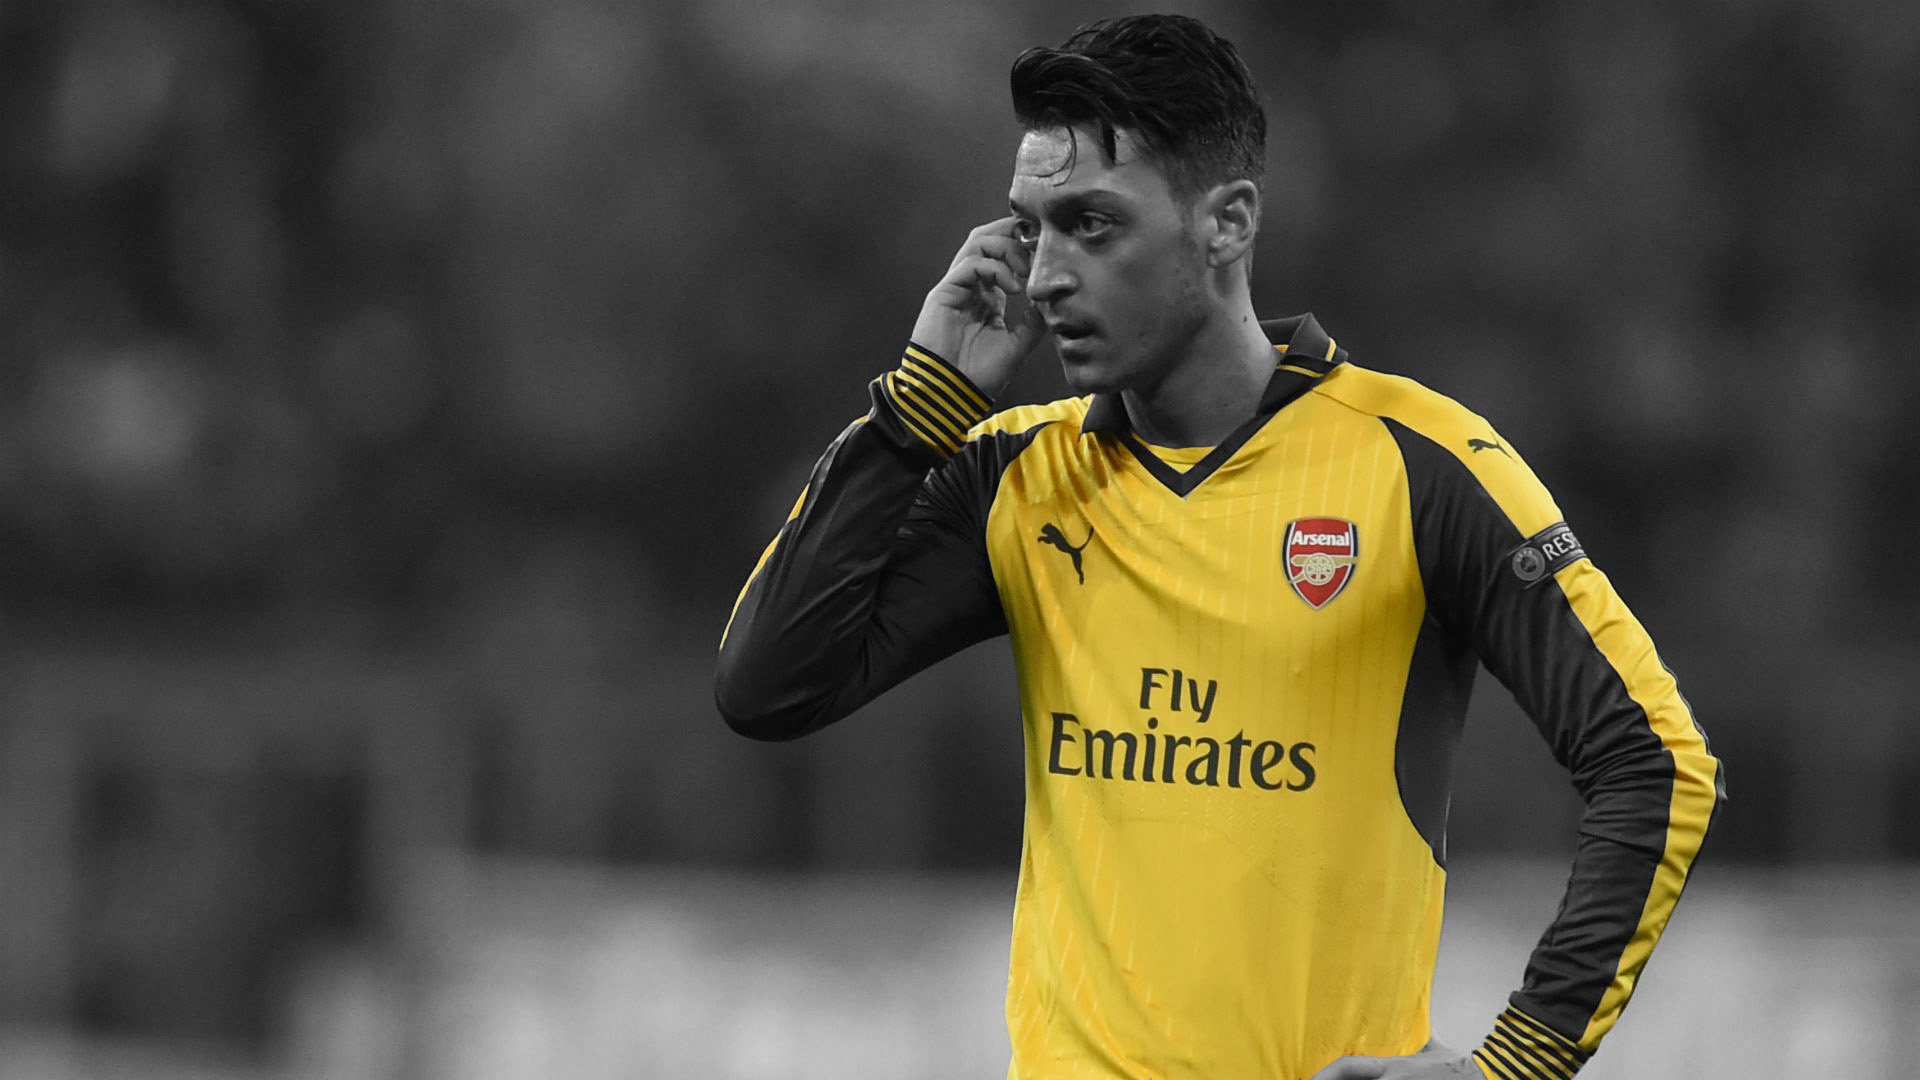 Report: Arsenal Offer Ozil Final £275,000/Week Contract